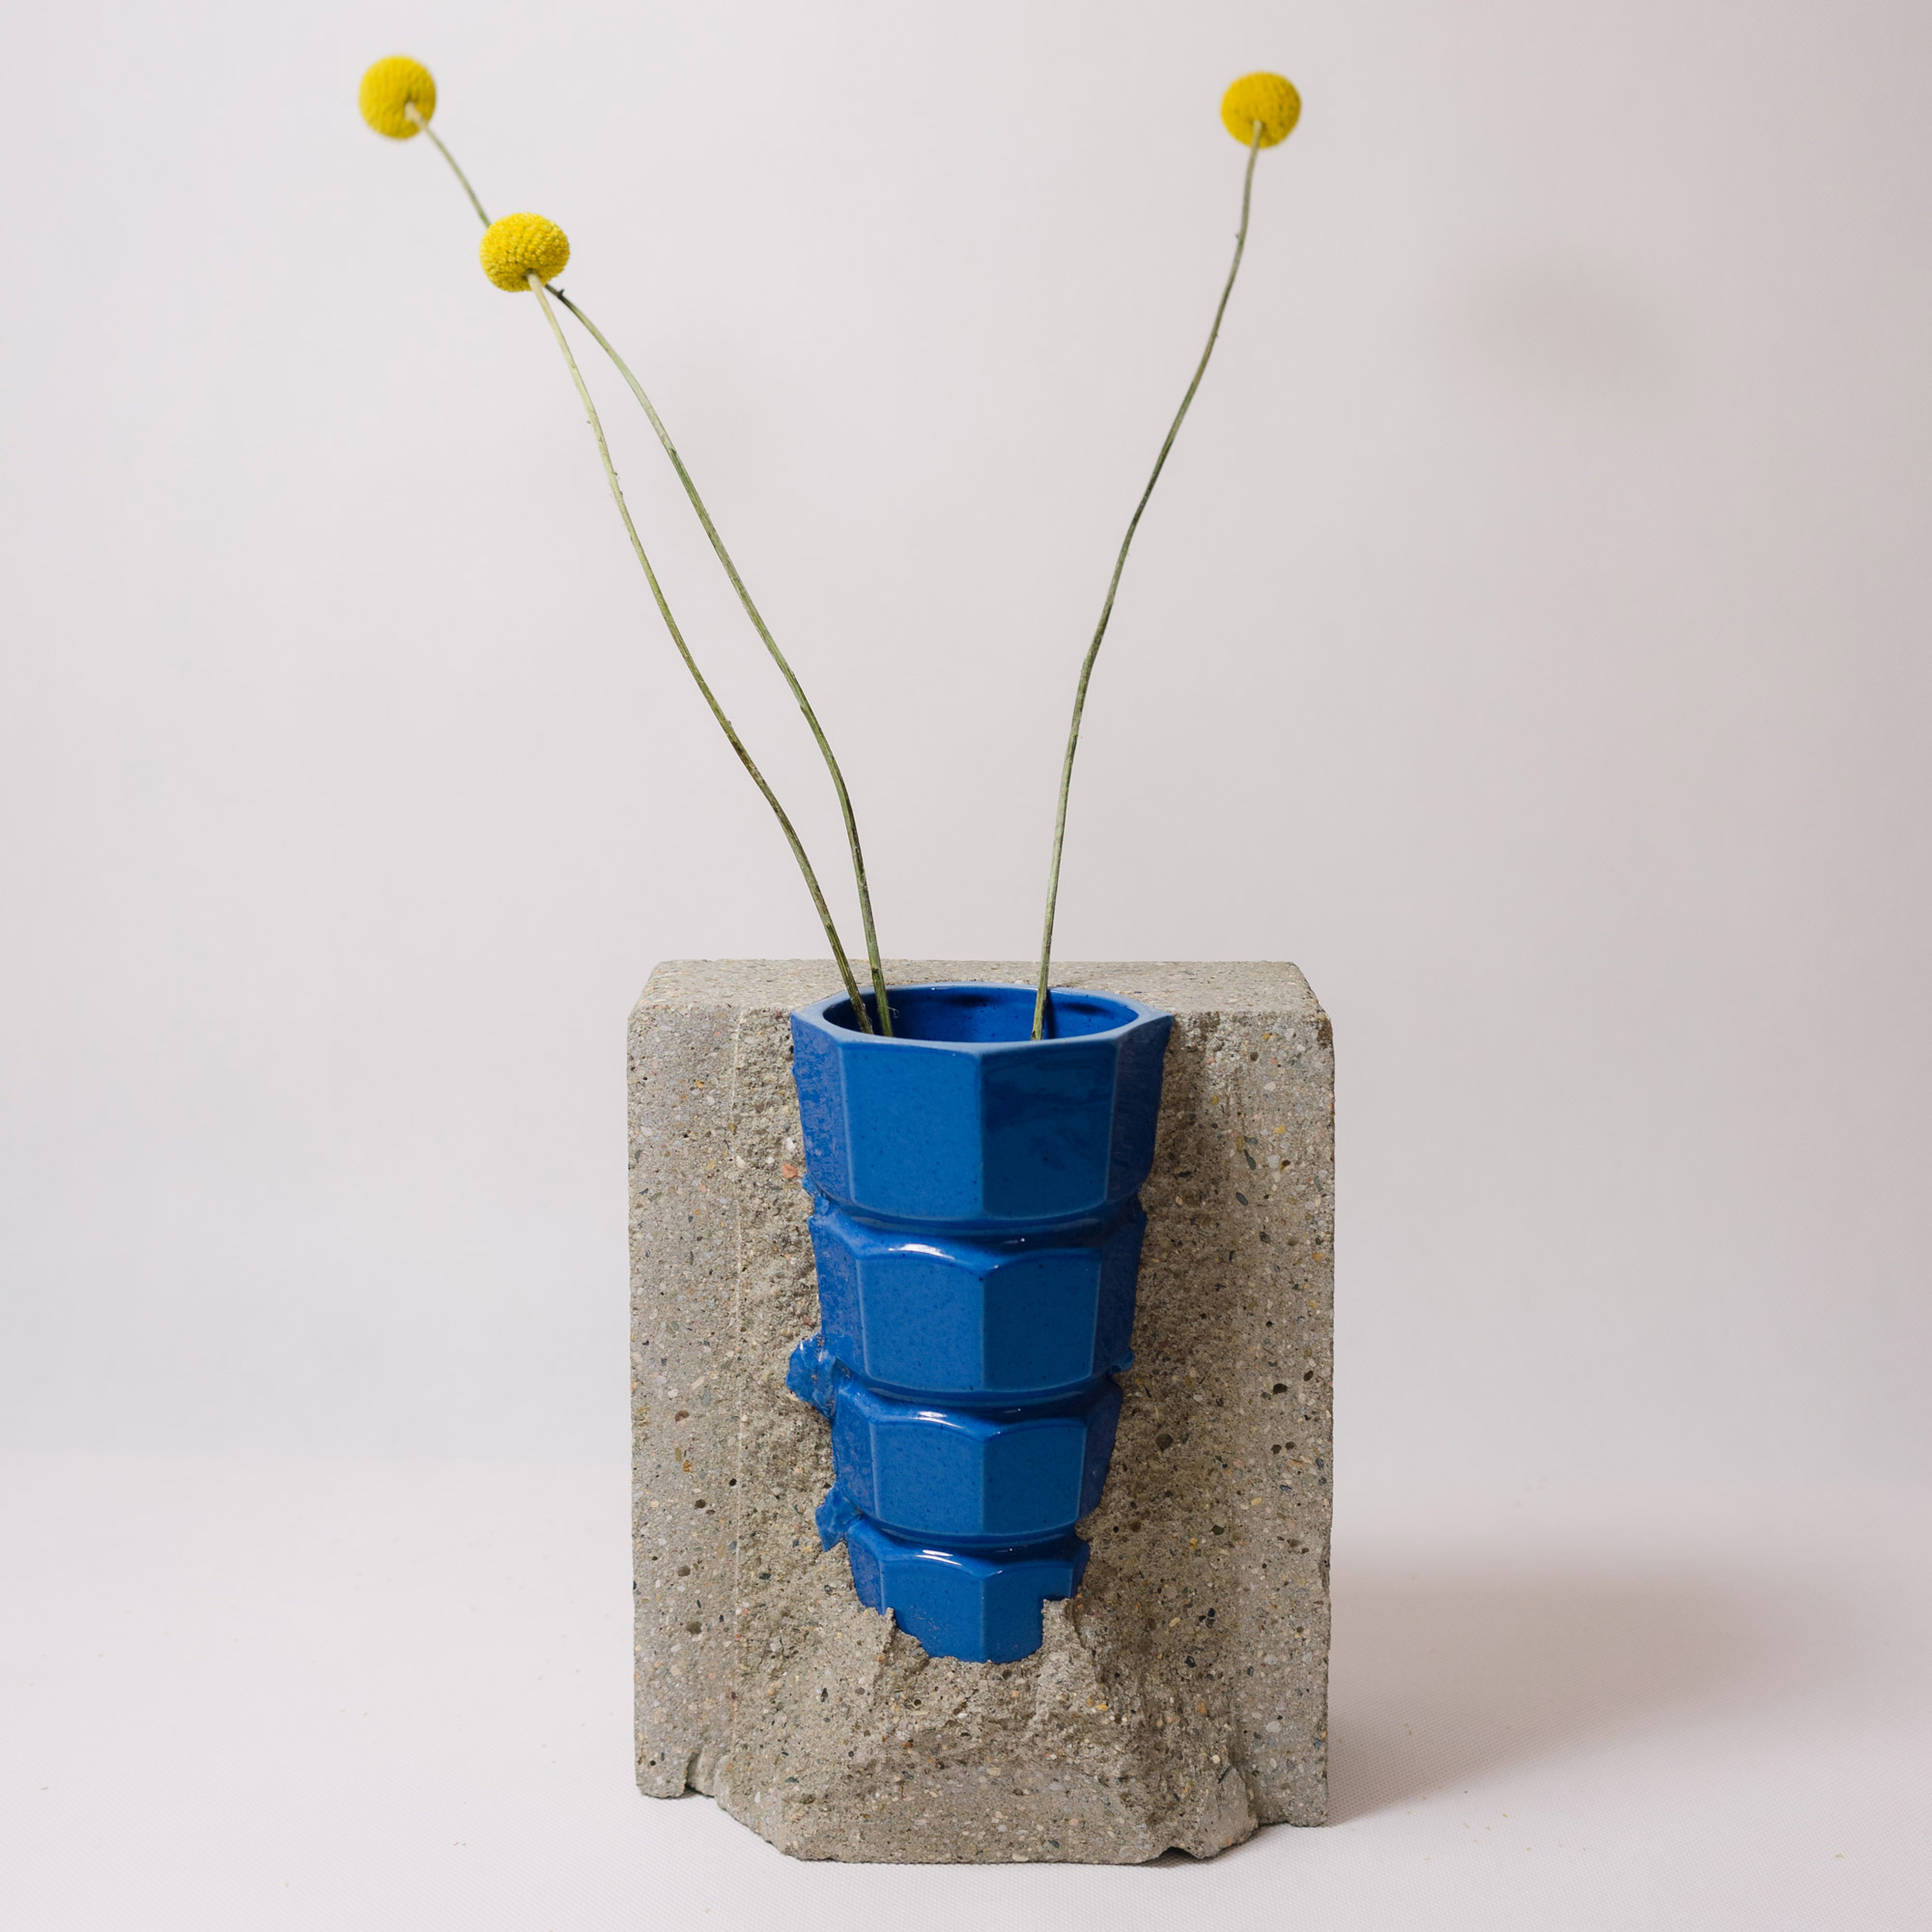 Blue porcelain-concrete vase by Vobouch designers with yellow flowers 01